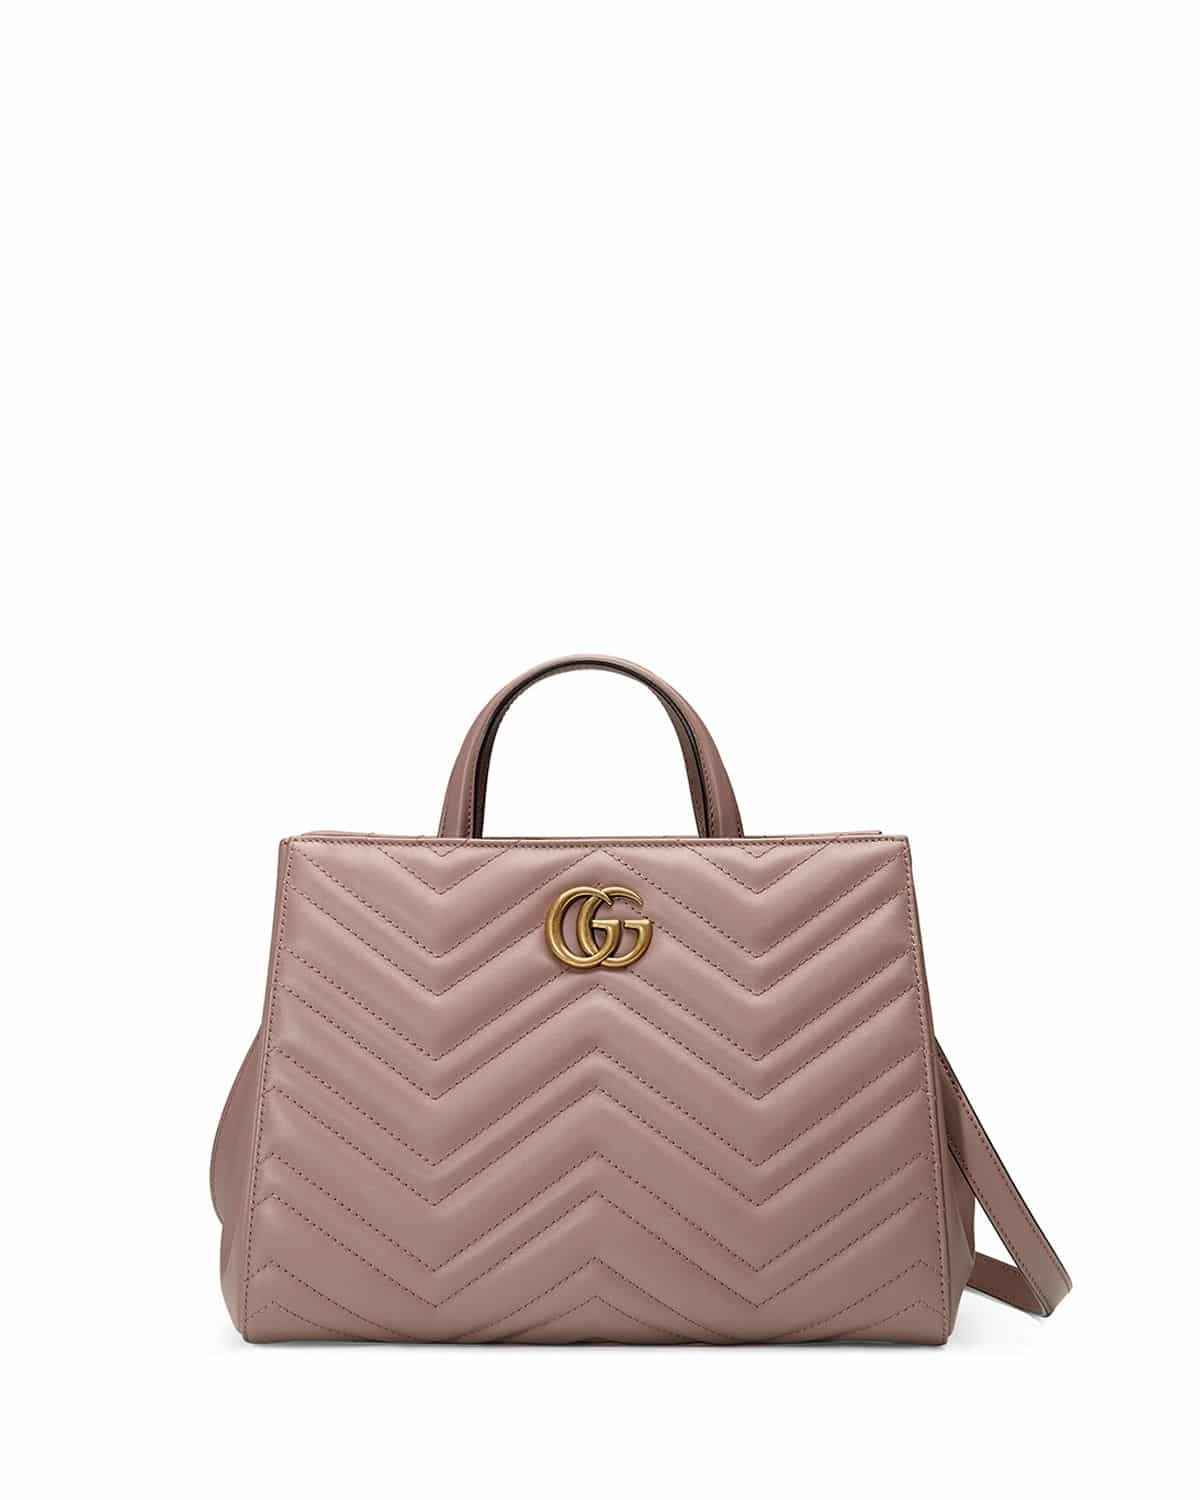 db264548d999 Gucci Nude GG Marmont Small Matelasse Top-Handle Bag